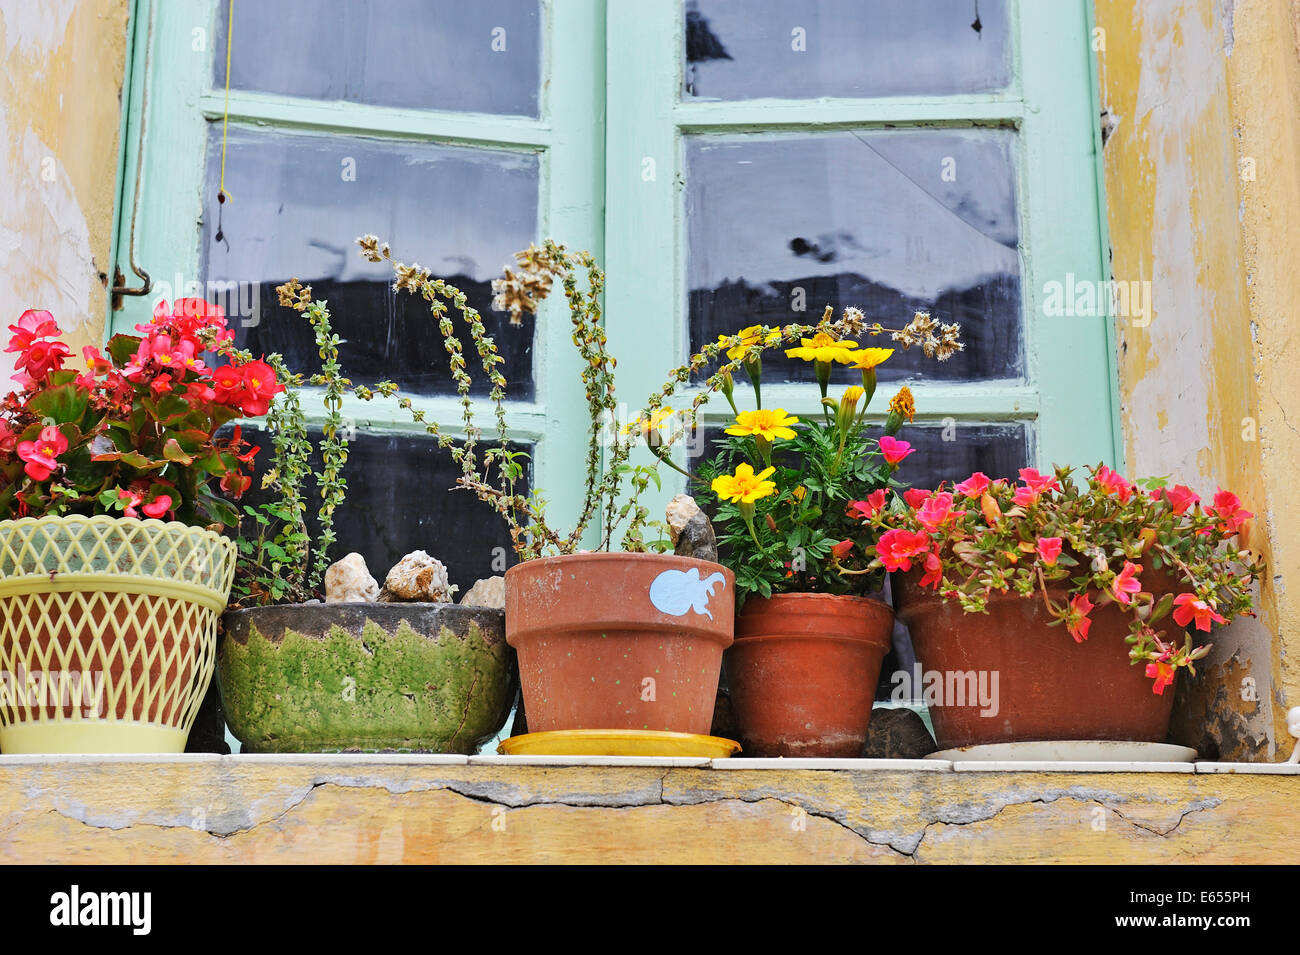 Wonderful Flowers In Plant Pots On A Windowsill In A French Village, France, Europe